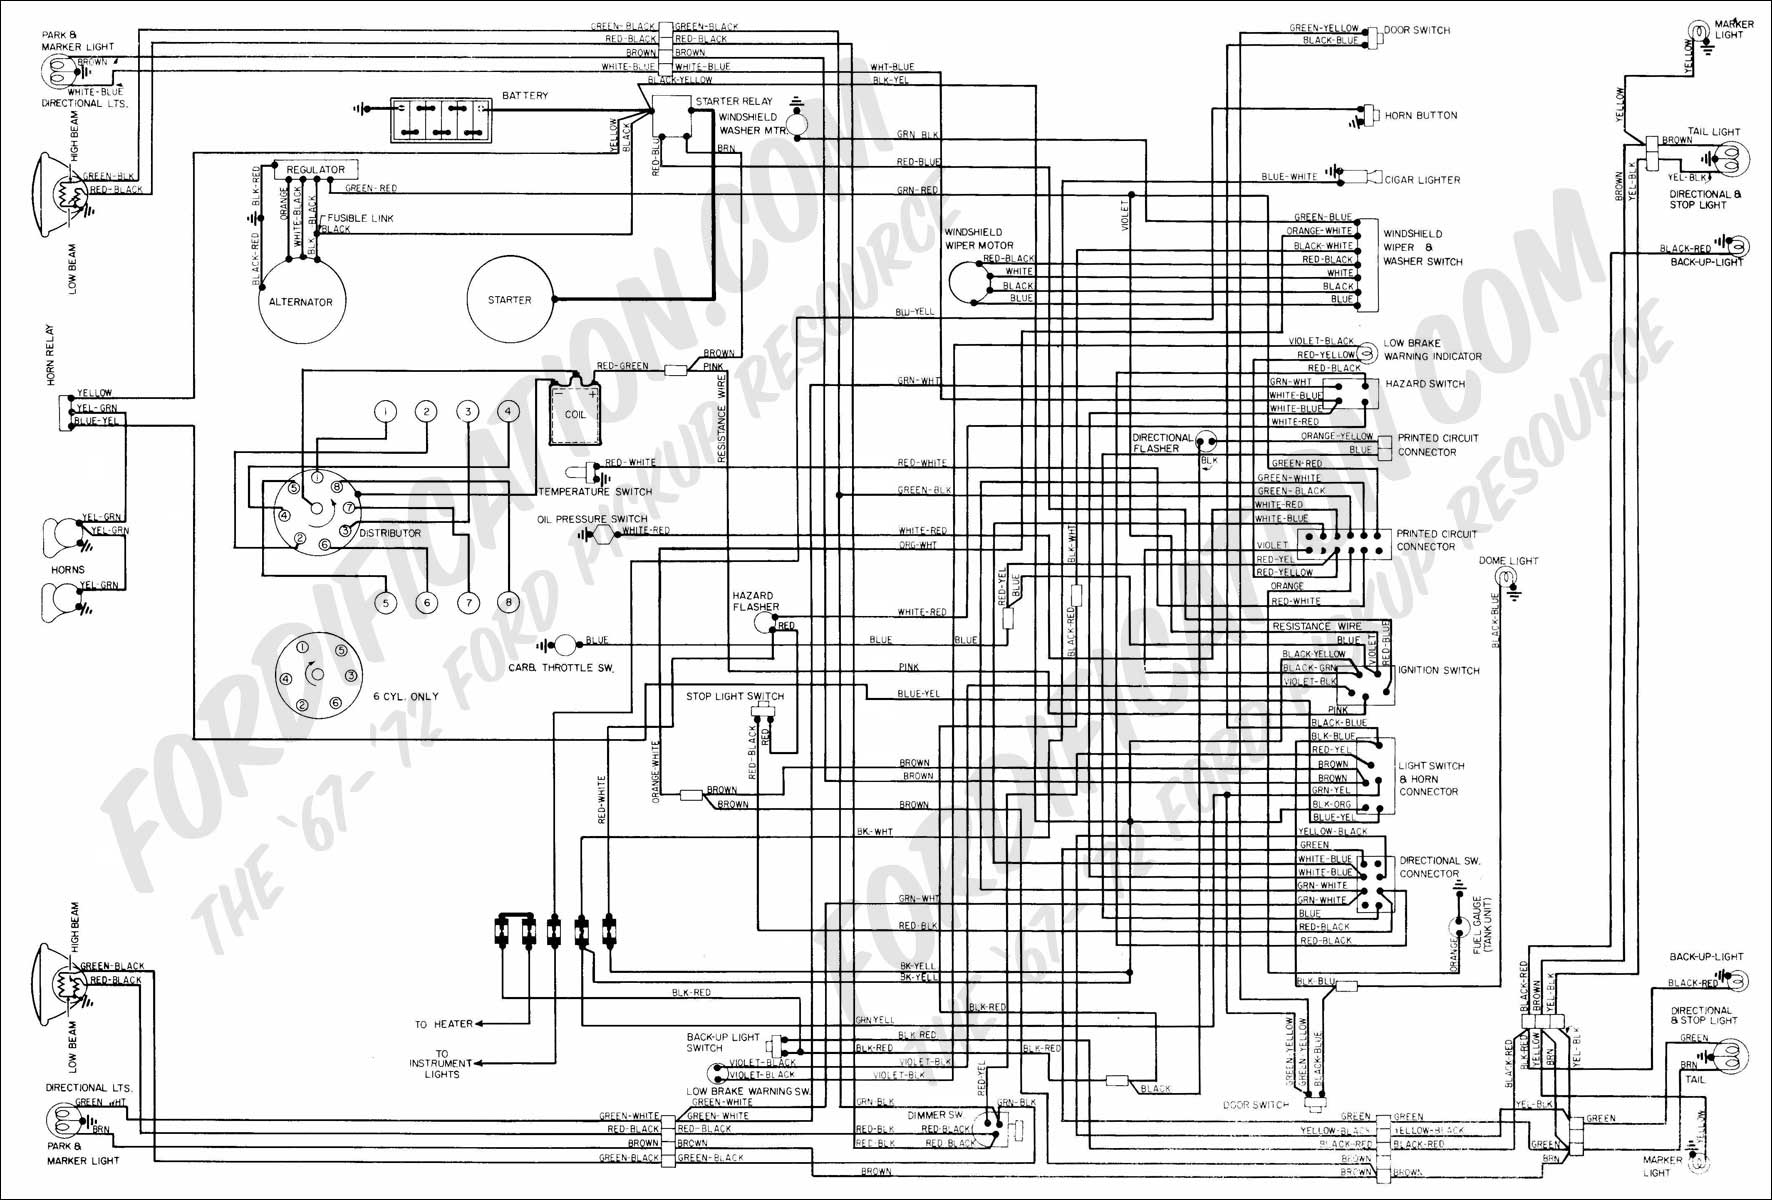 1972 bmw 2002 wiring diagram schematic wiring diagram rh 57 tempoturn de